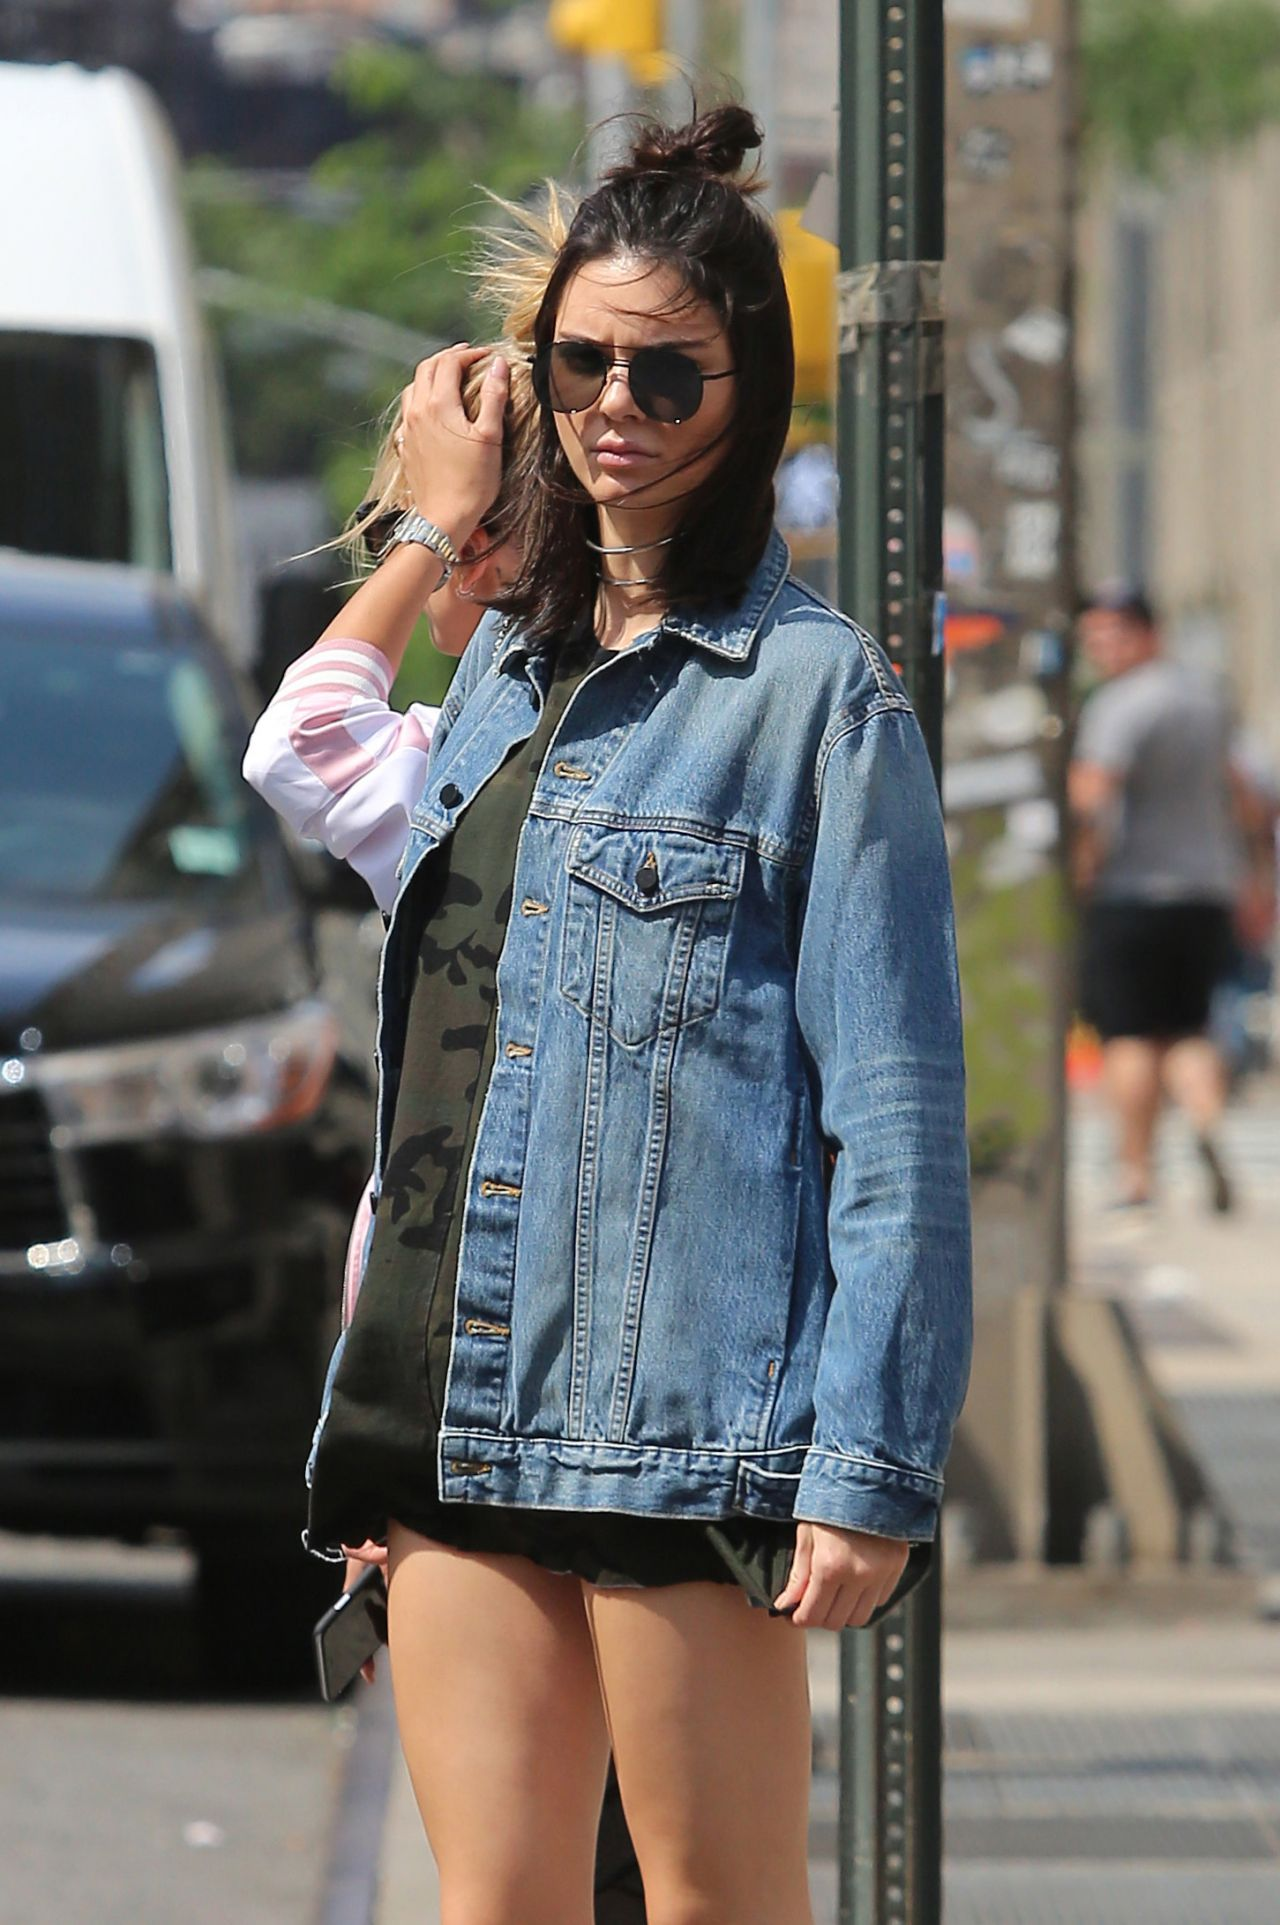 kendall-jenner-out-in-new-york-6-20-2016-1